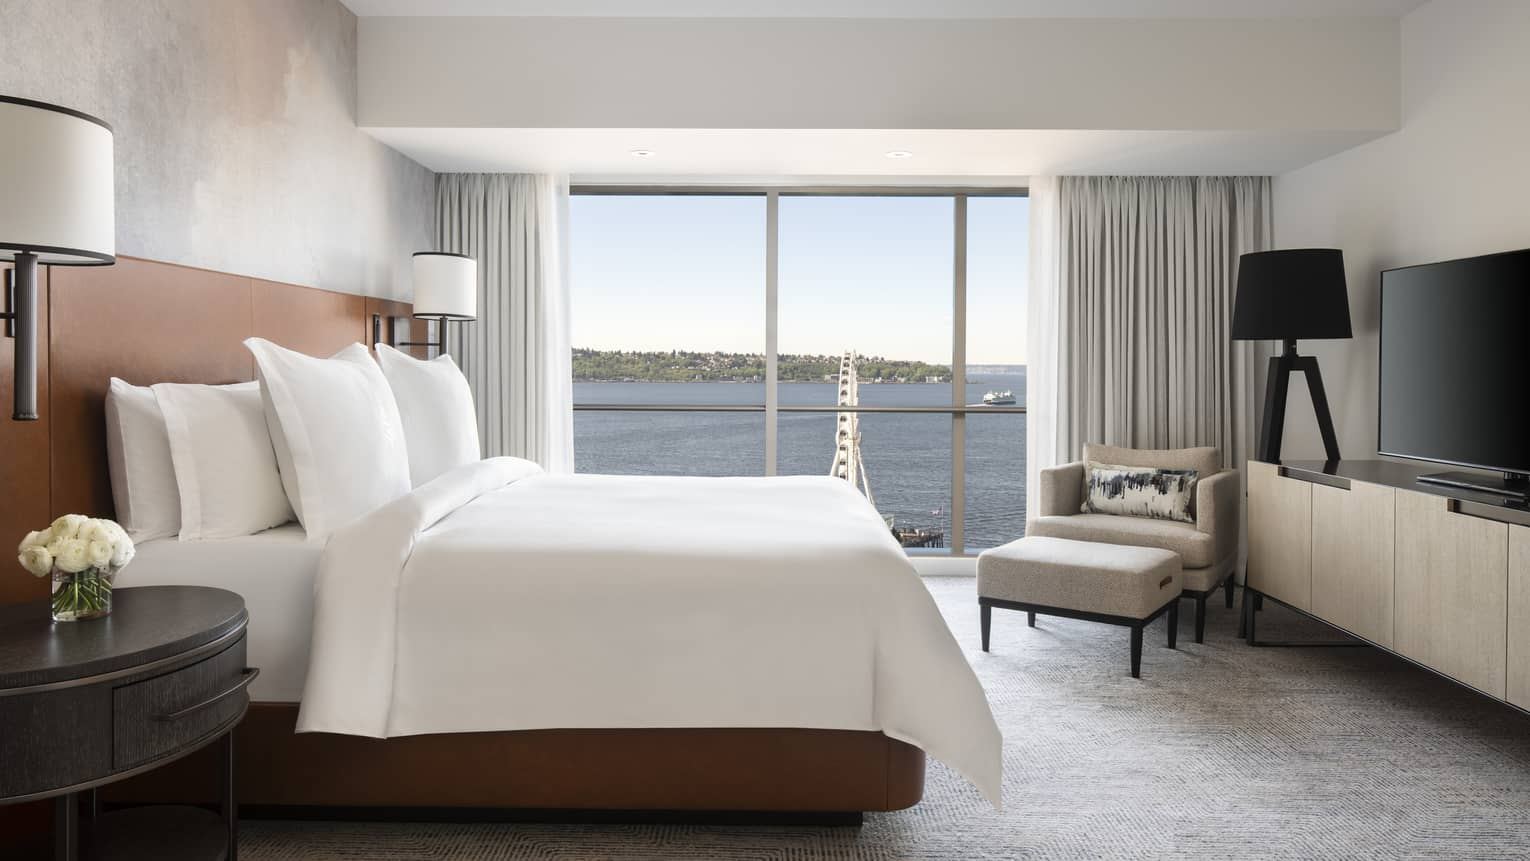 The Deluxe Elliot Bay Suite overlooks the Seattle Great Wheel